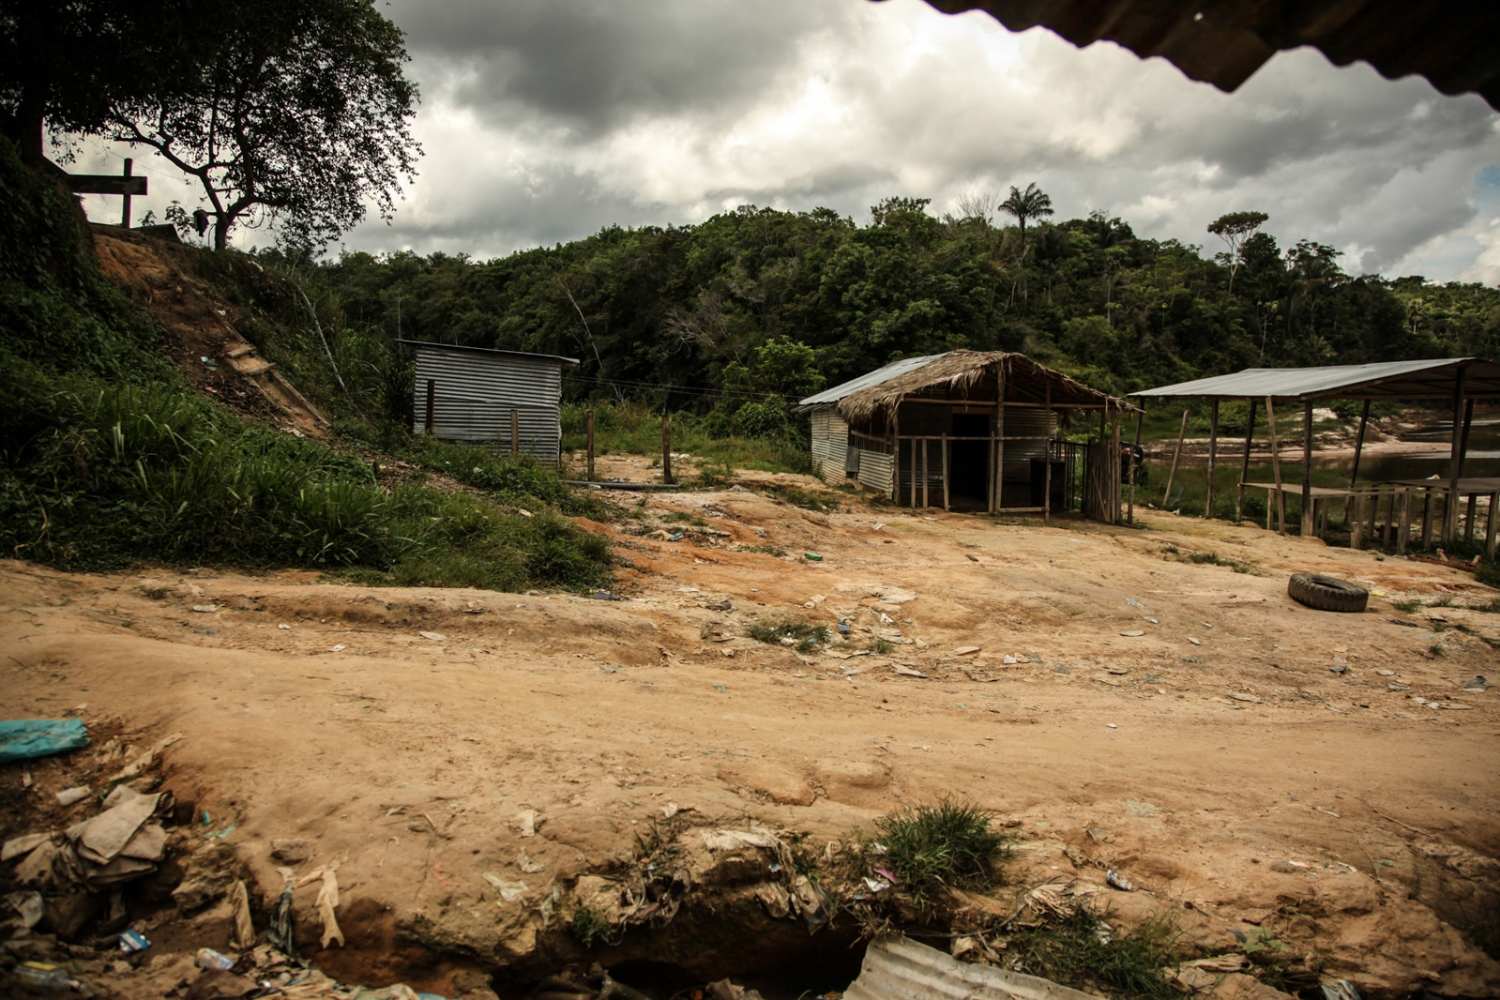 In the Aguas Claras camp the homes, which are almost always temporary, are made of zinc plates or large black plastic canvas mounted on wooden structures.